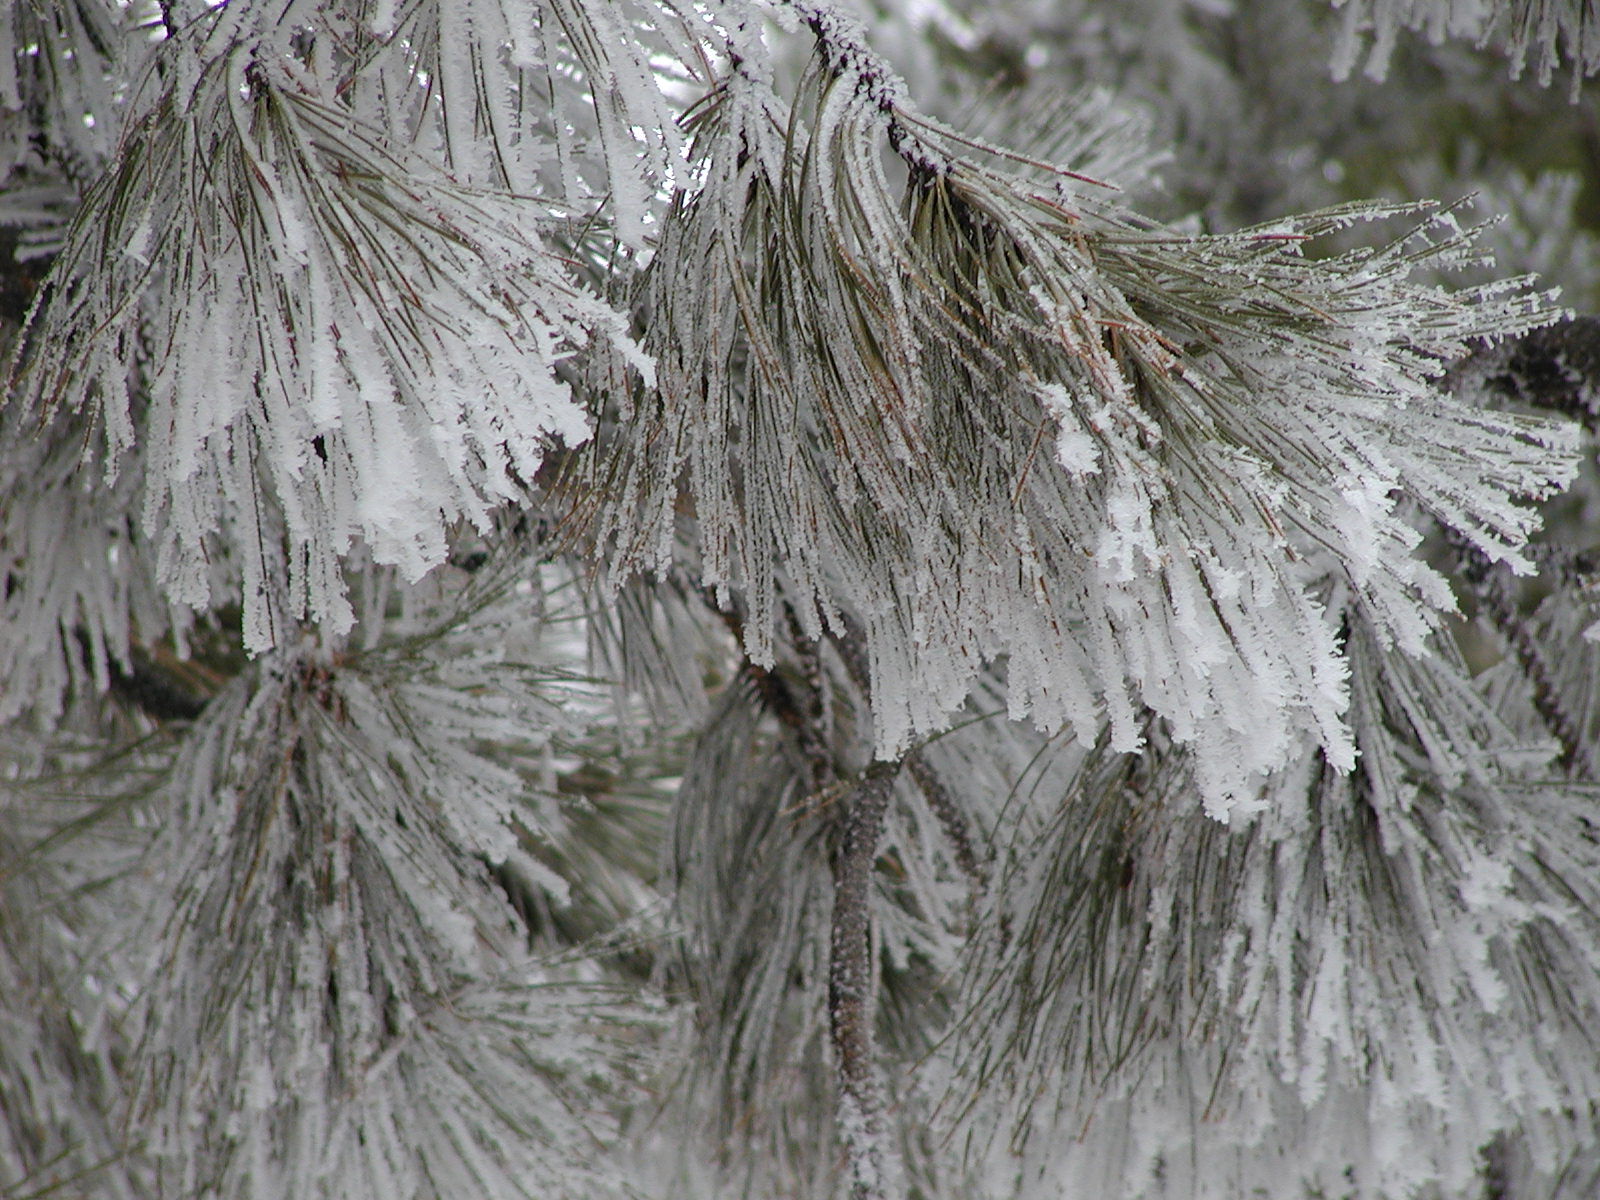 Pine coated in hoar frost.